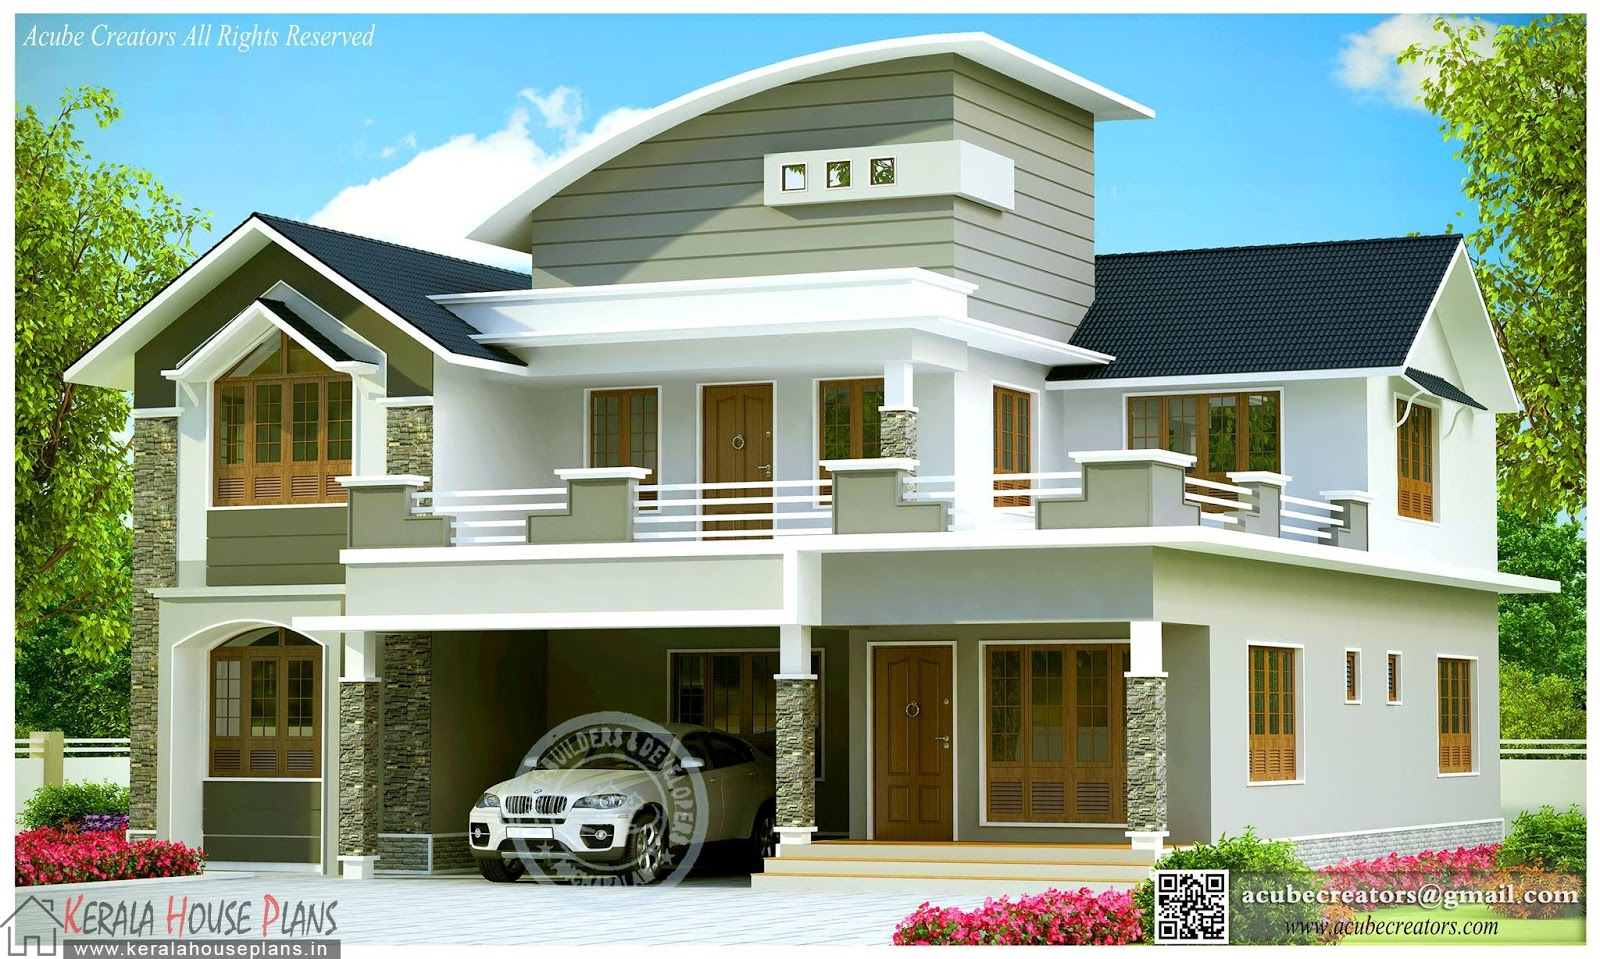 Beautiful contemporary house design kerala kerala house plans designs floor plans and elevation - Kerala beautiful house ...